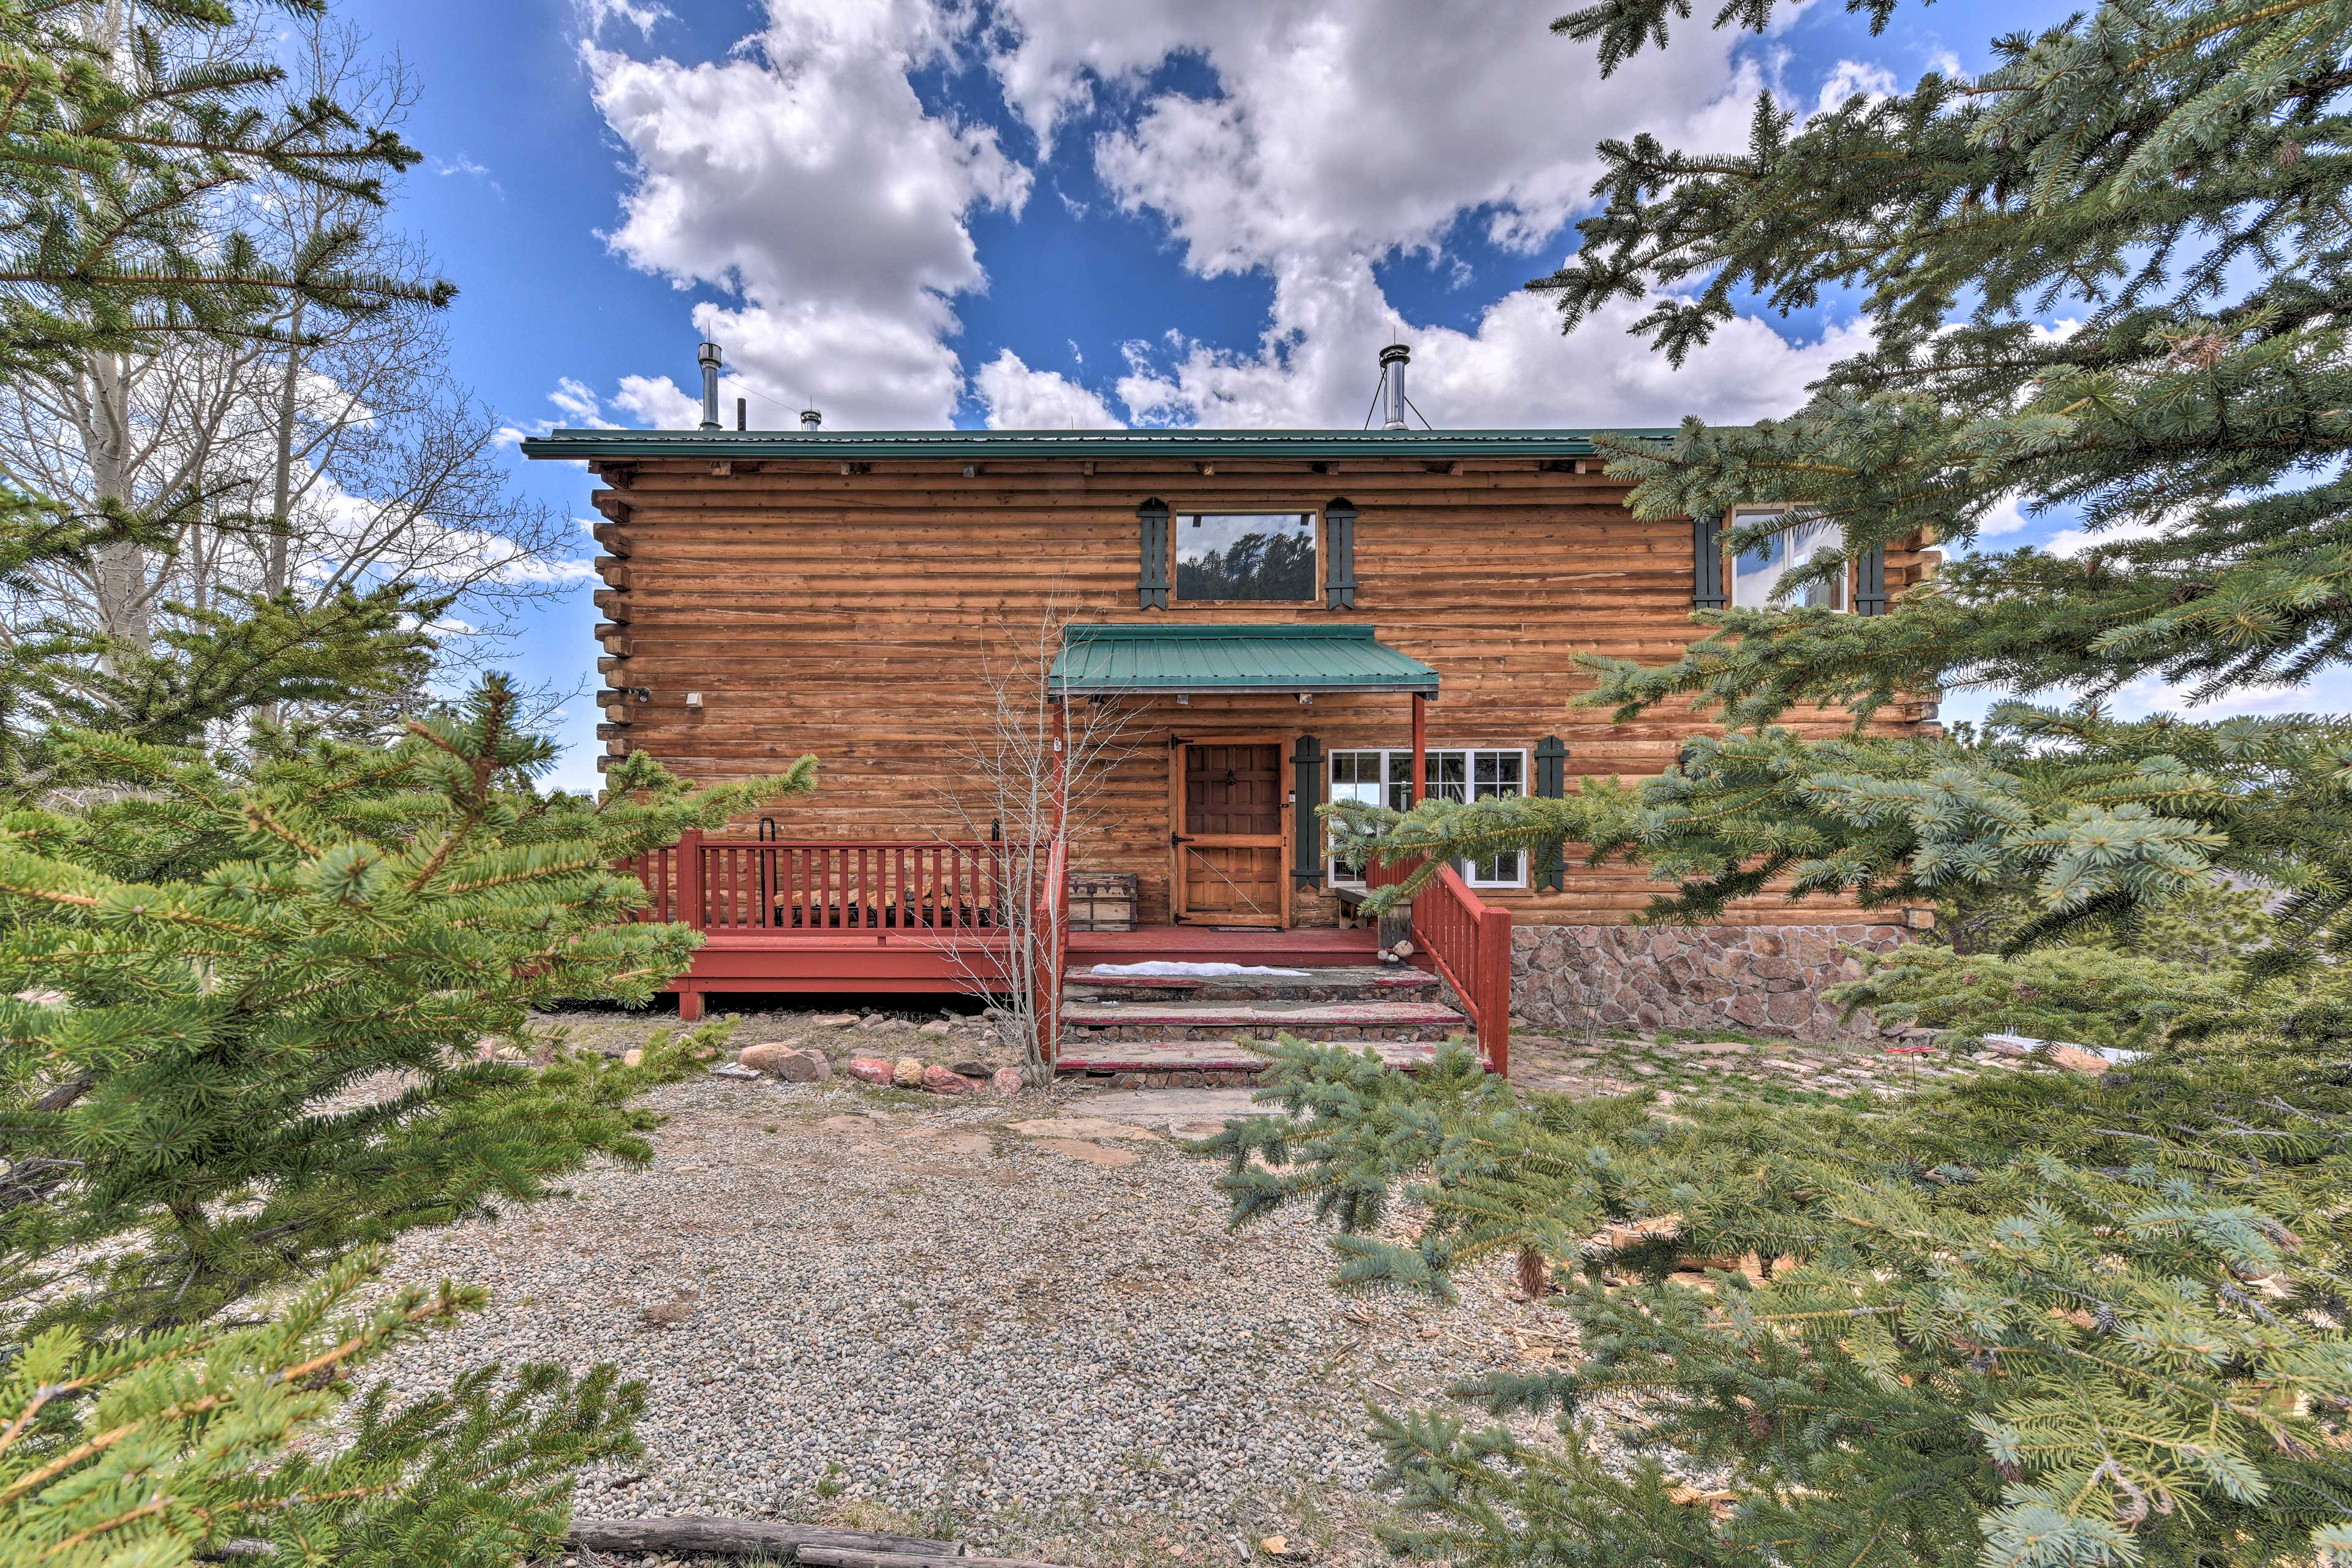 Escape with your family to this secluded Colorado cabin!